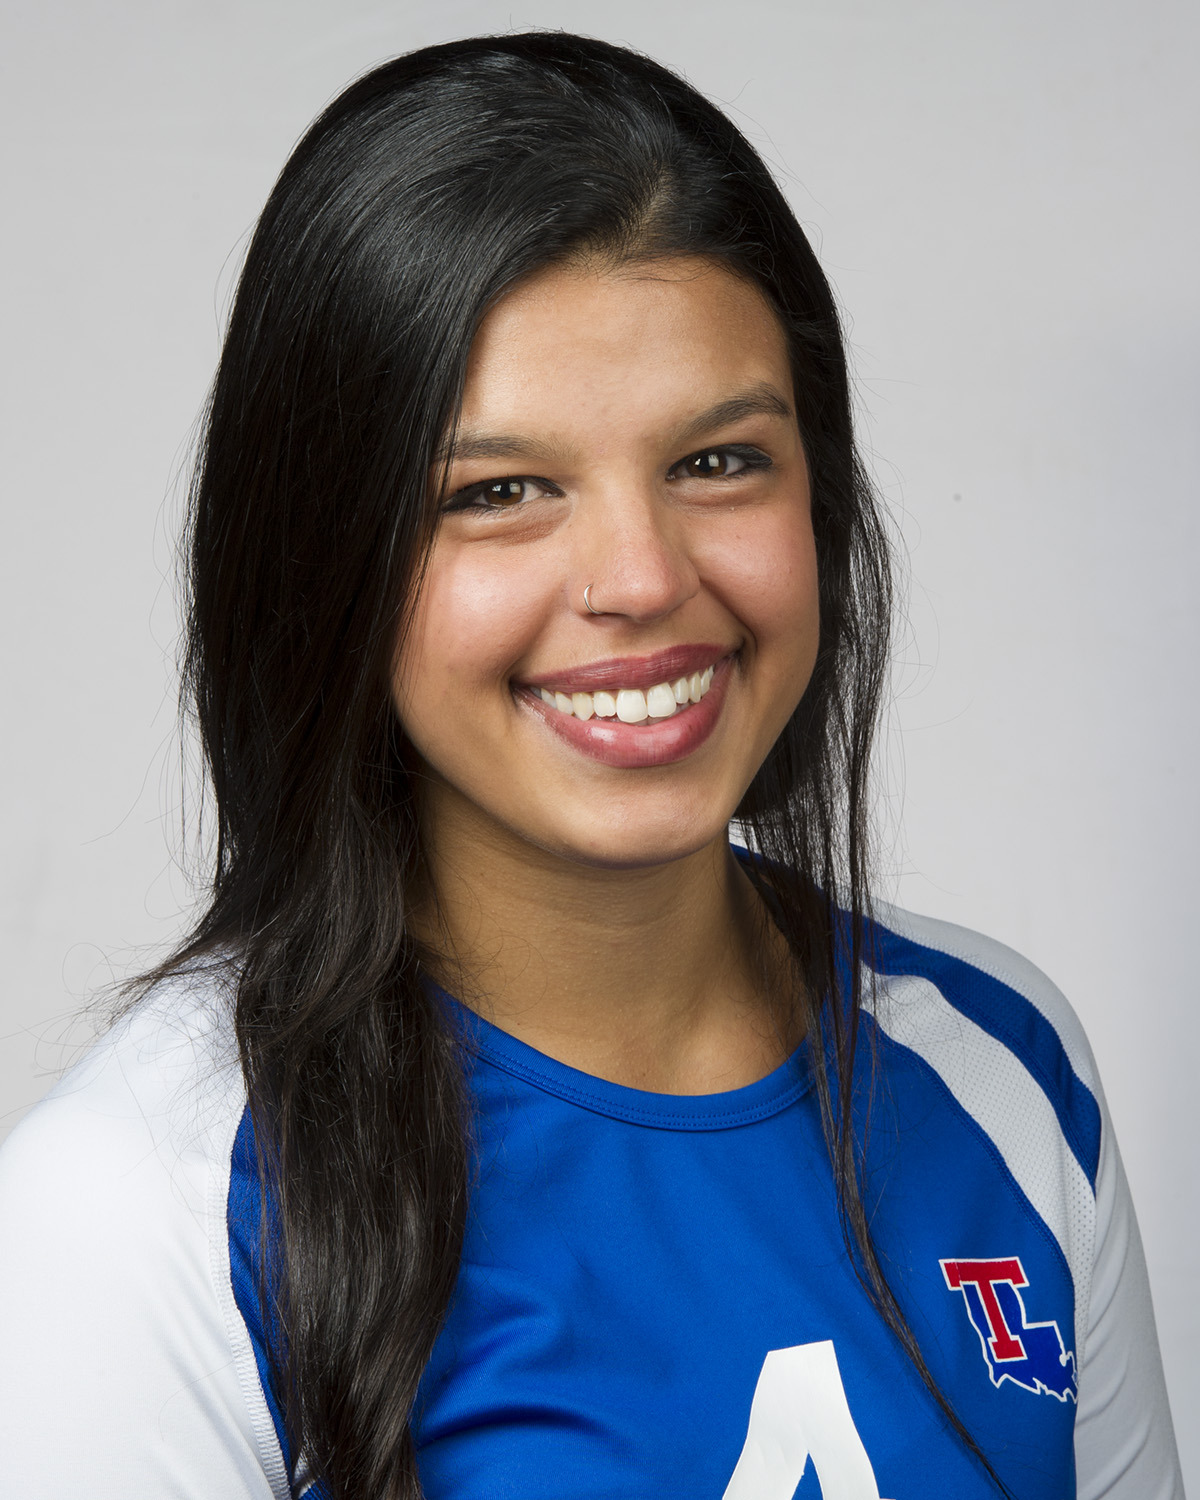 <b>Coelho tied the single-match record for aces with eight against UNO</b>